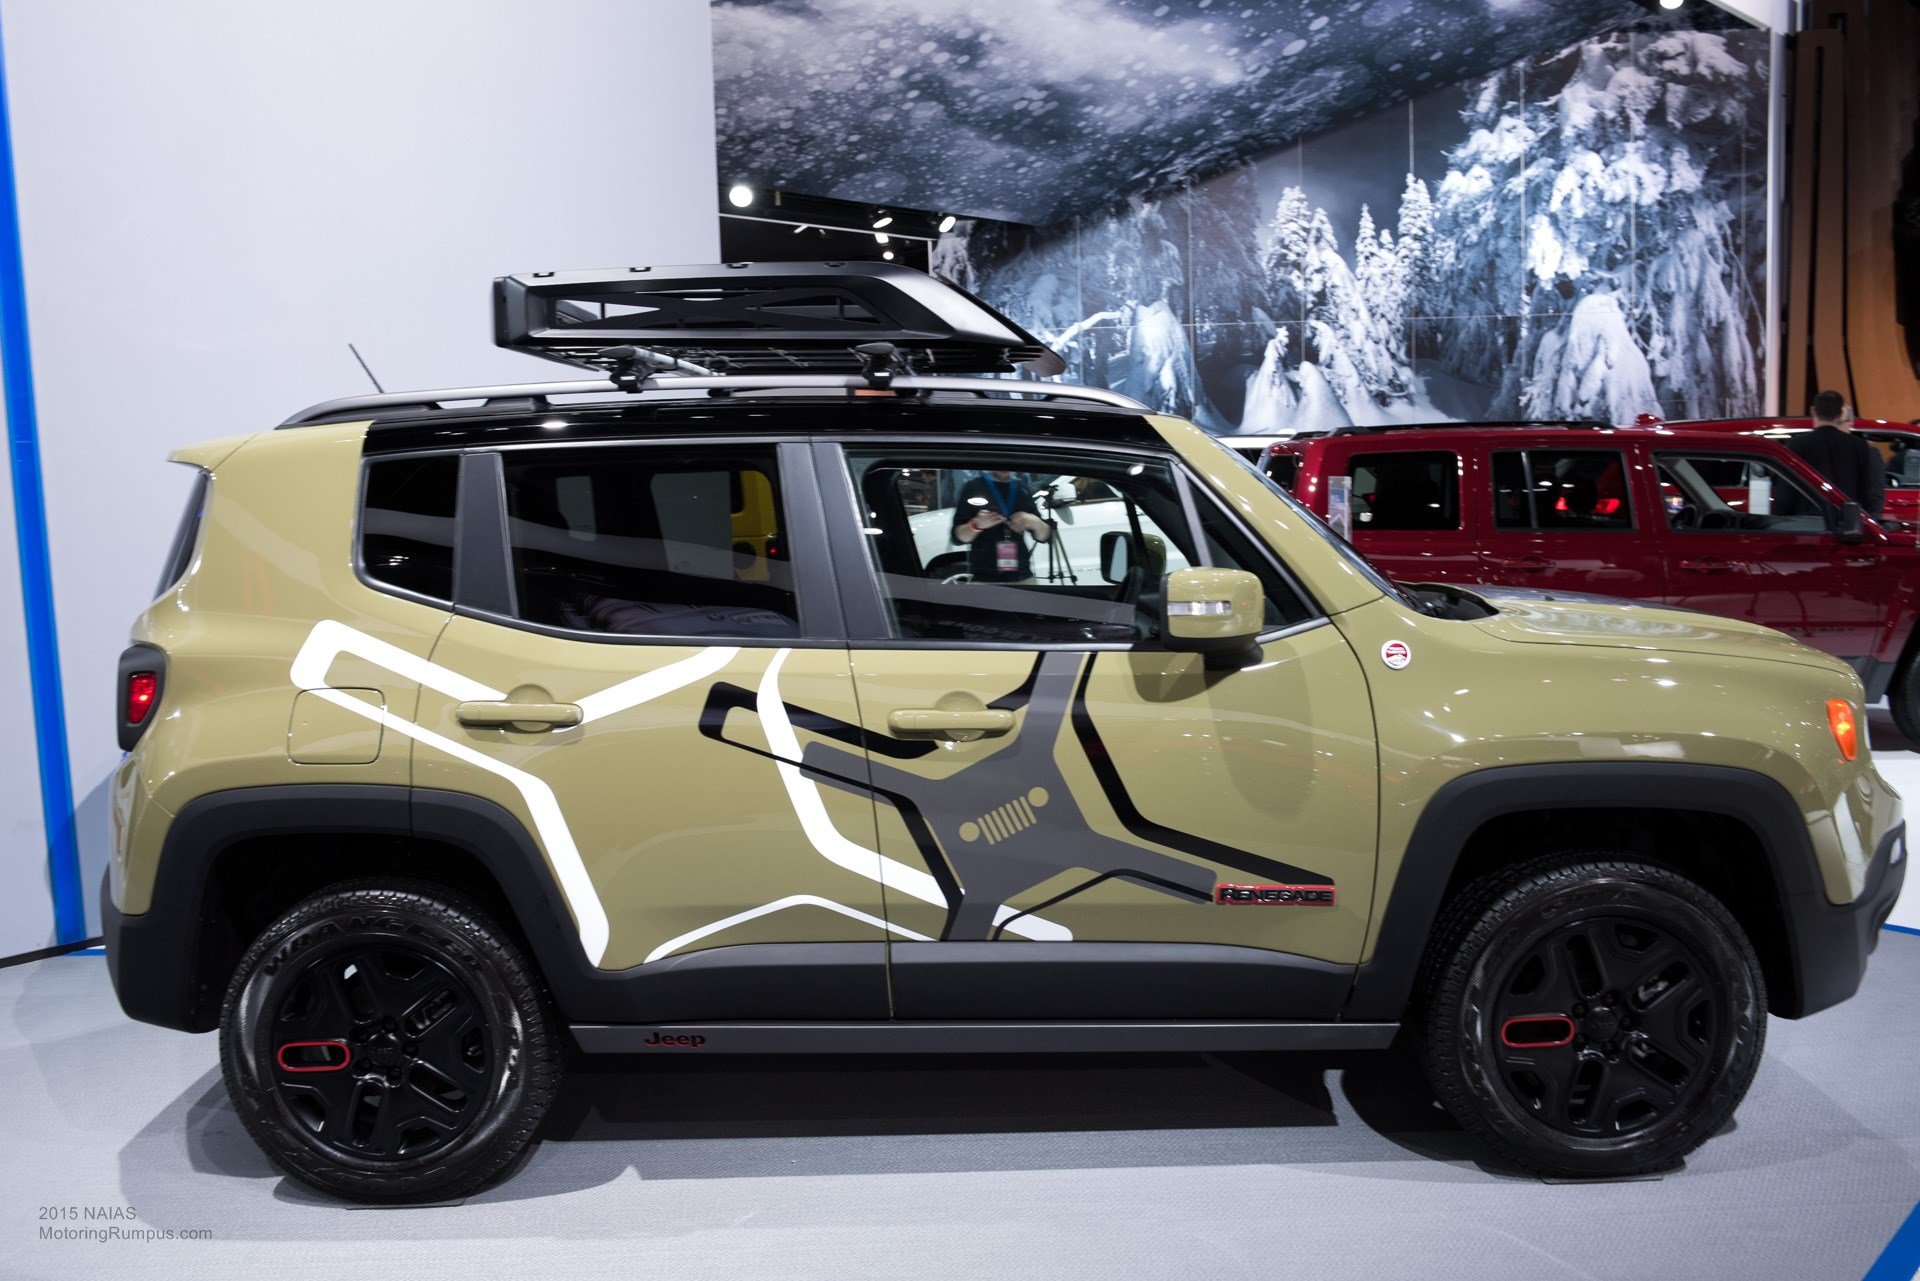 2015 NAIAS Jeep Off-road Mopar-equipped Renegade